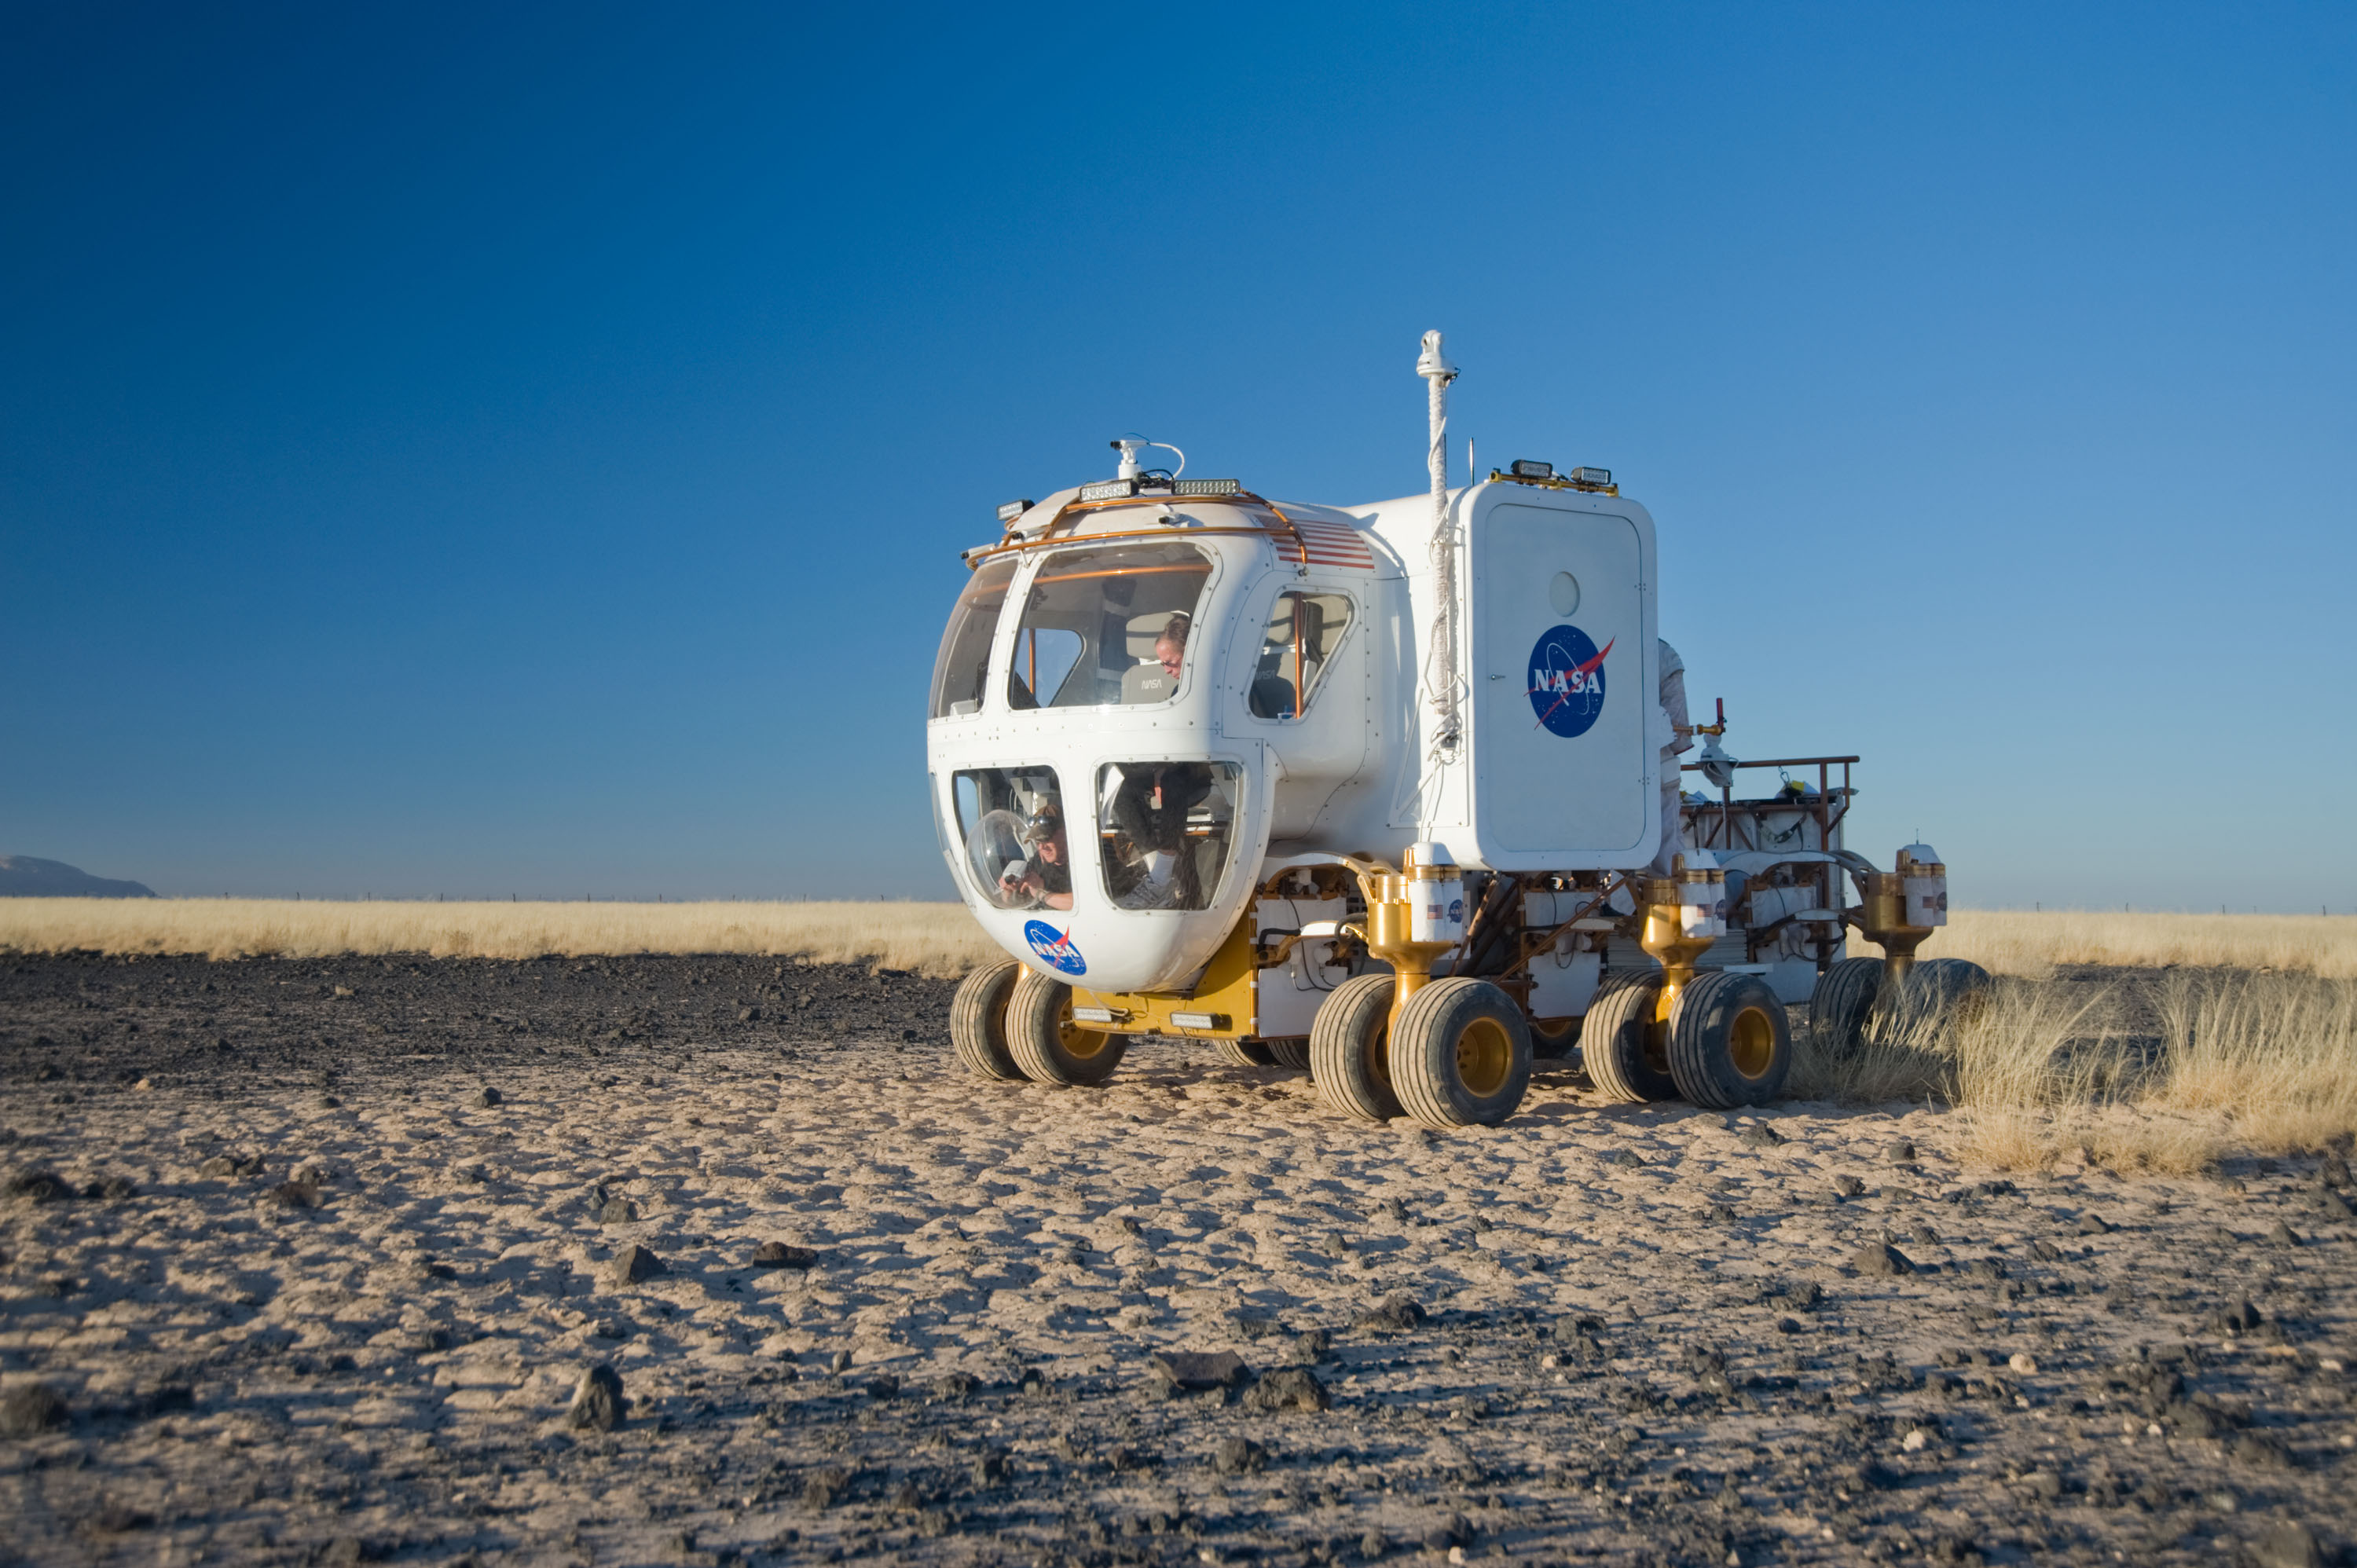 NASA - Multi-Mission Space Exploration Vehicle